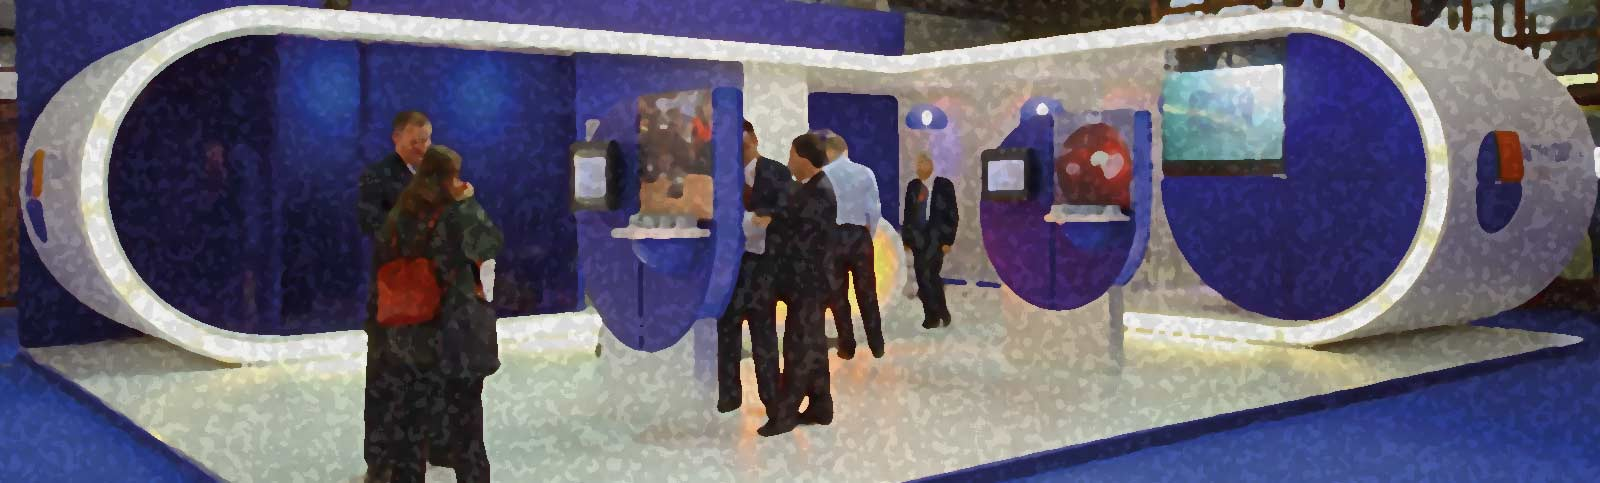 Drawing a Crowd at a Trade Fair or Exhibition